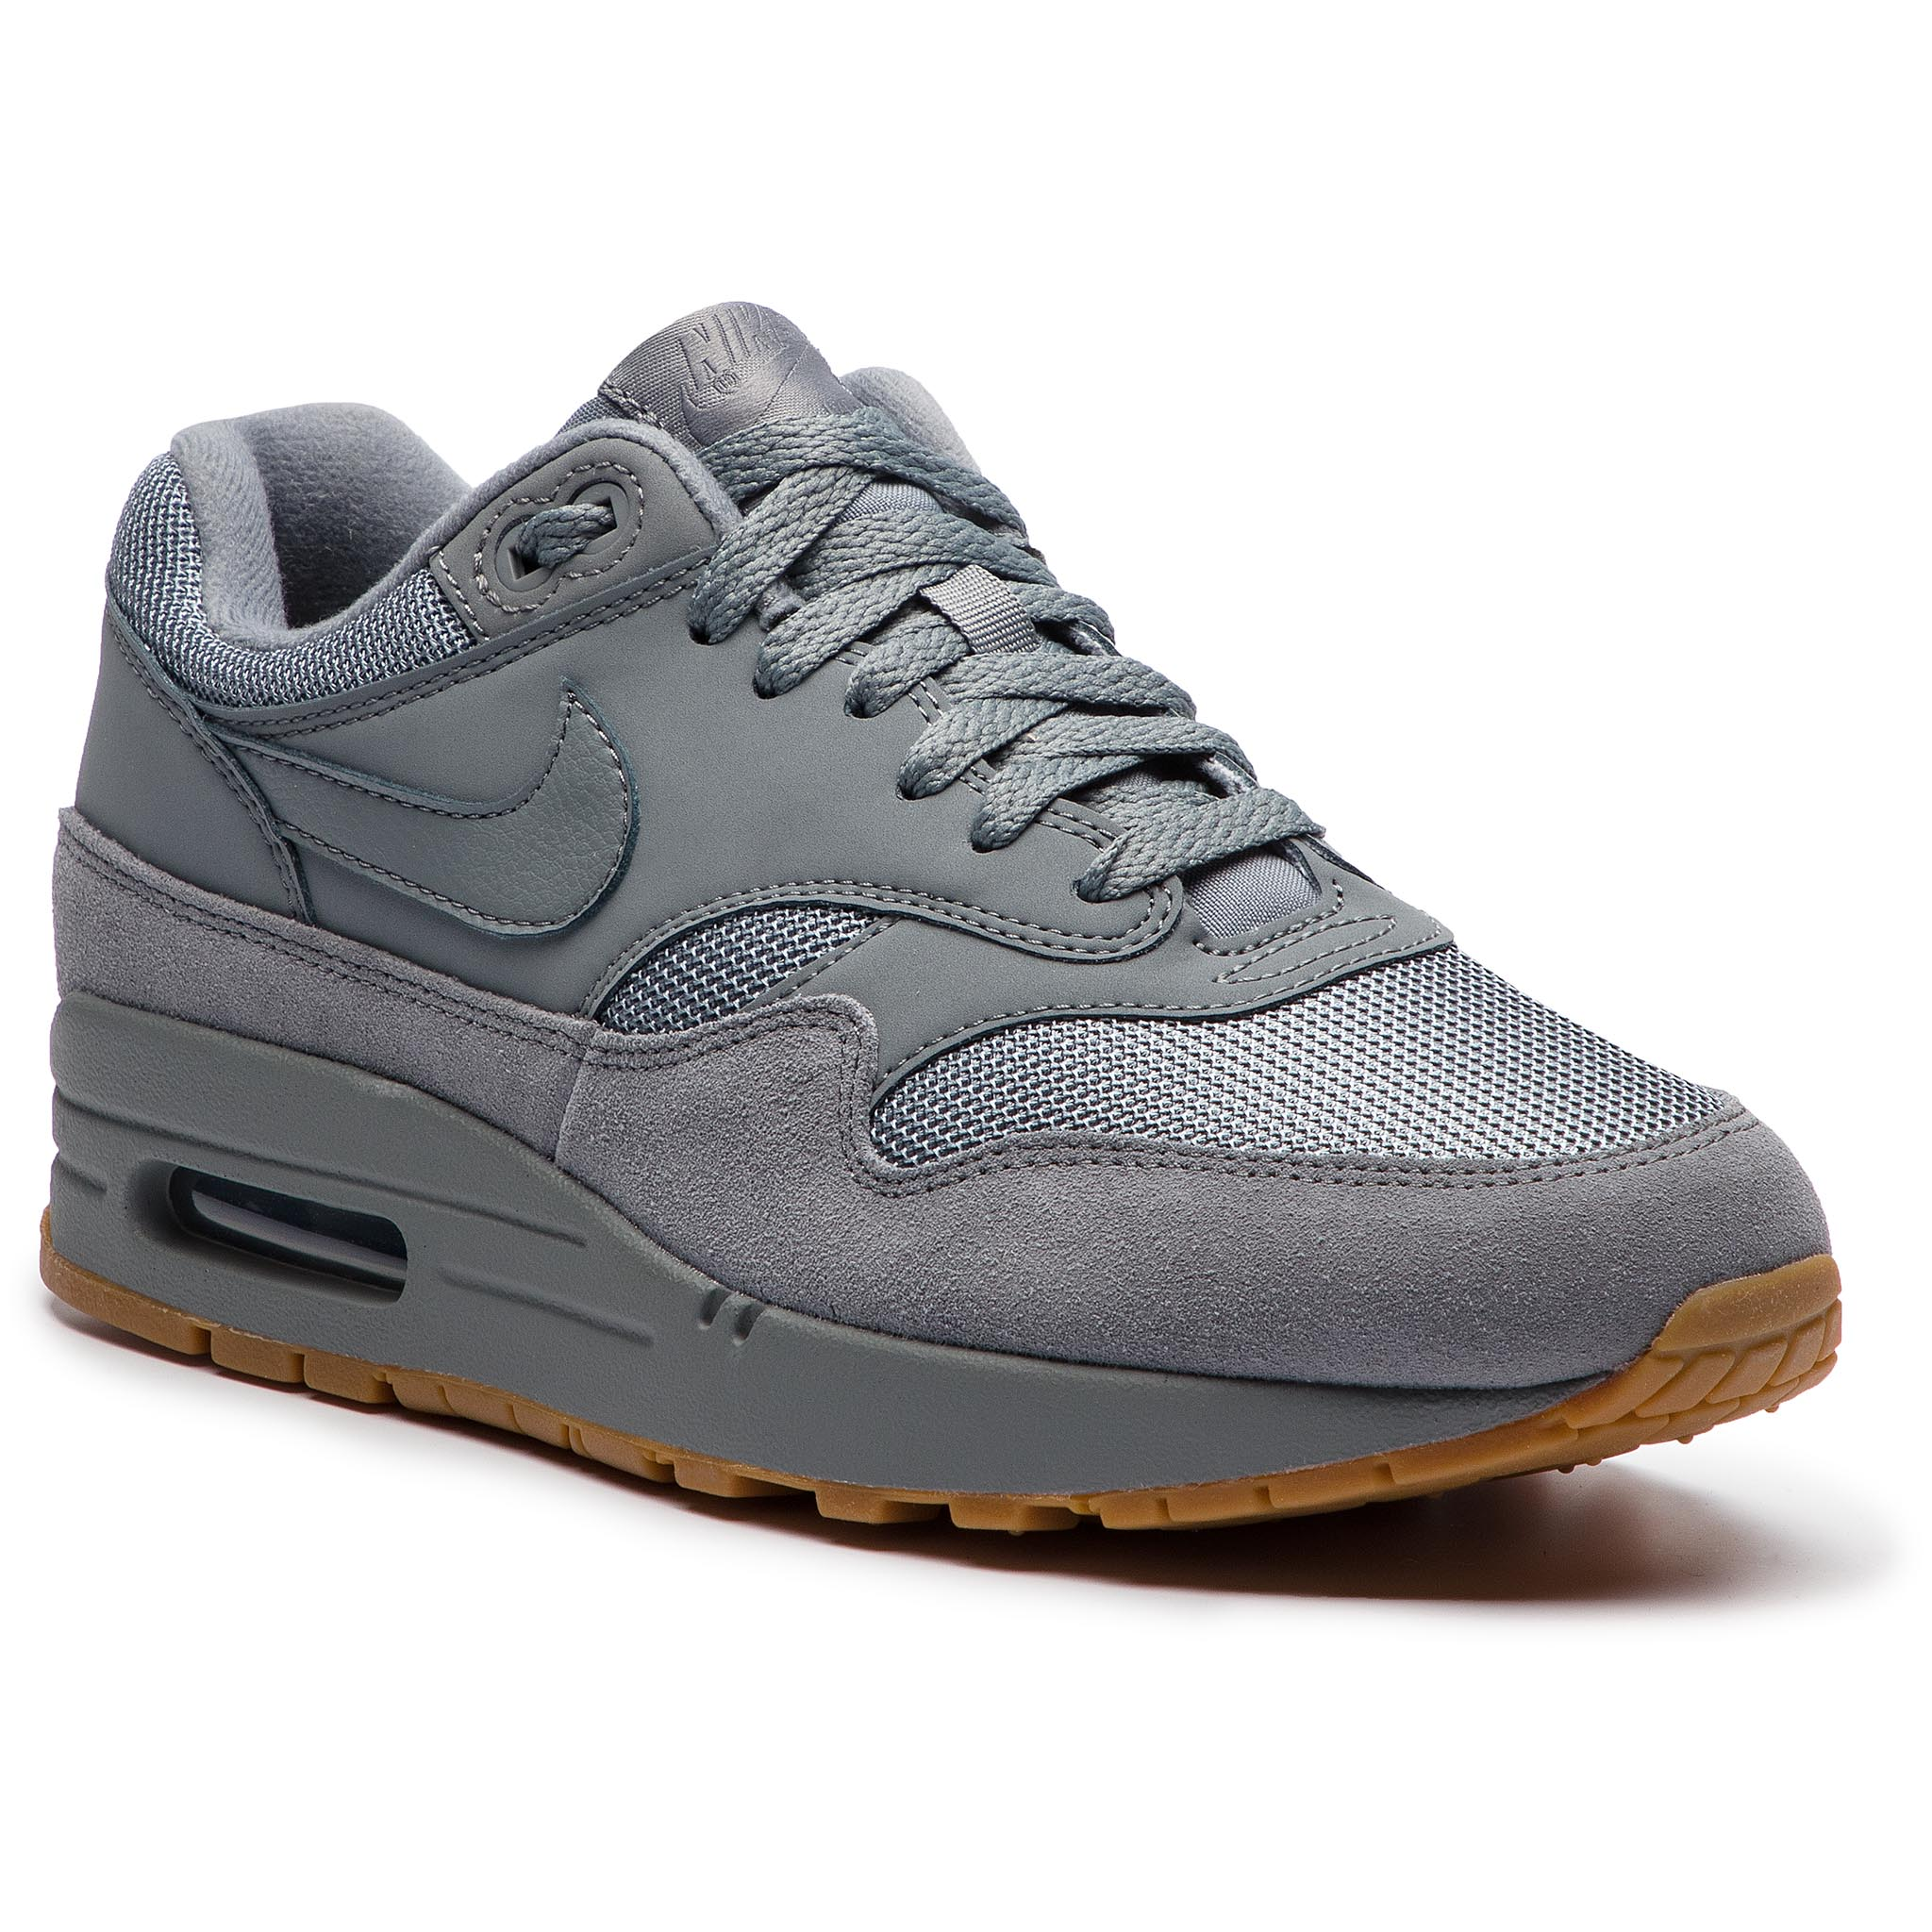 low priced a1eb4 bd6e3 Shoes NIKE Air Max 1 AH8145 005 Cool Grey Cool Grey Cool Grey